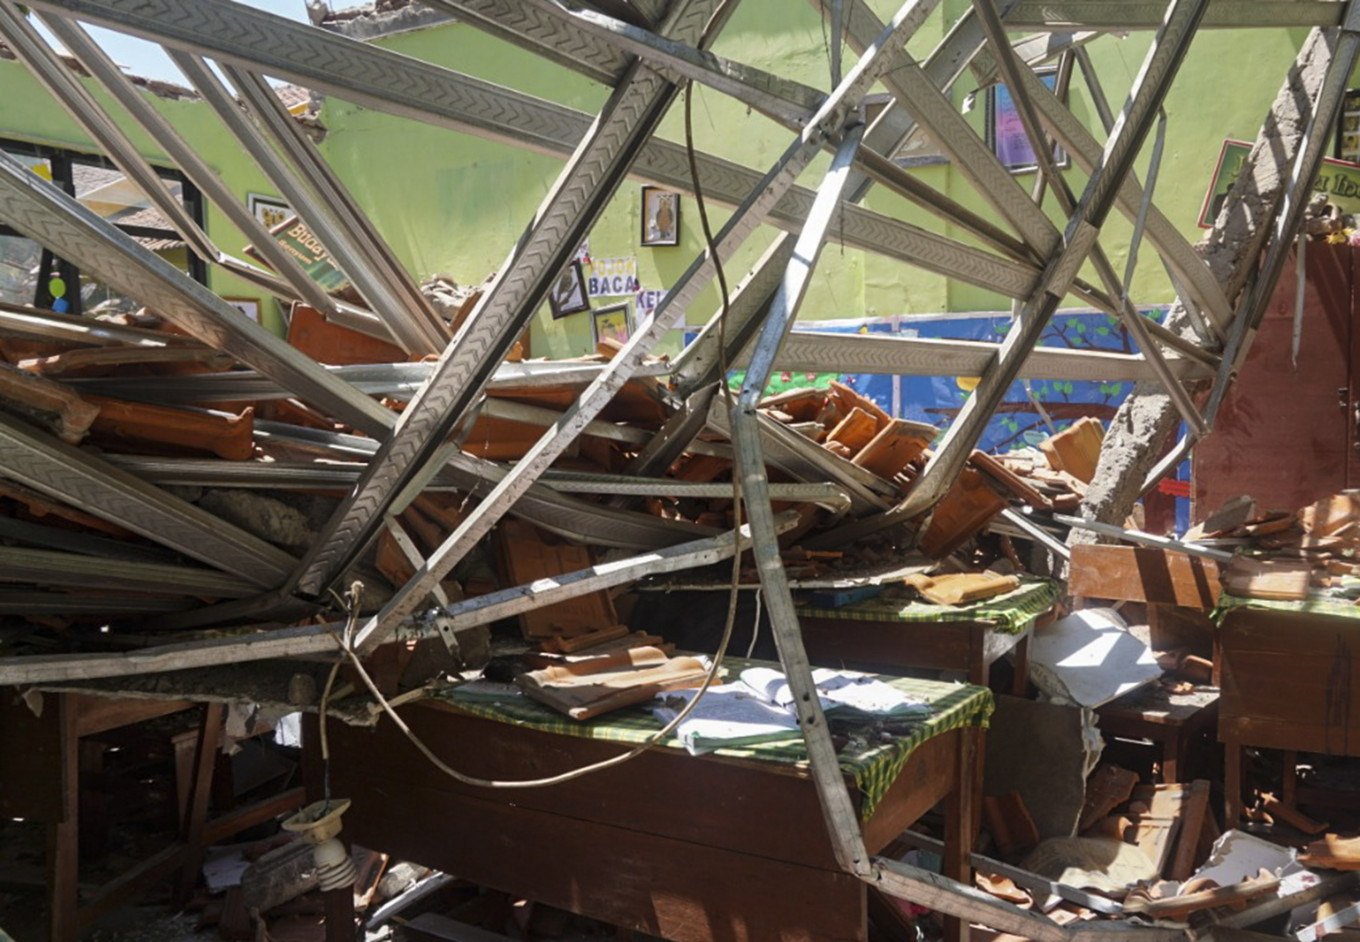 Pasuruan's commitment to education questioned after falling roof kills student, teacher